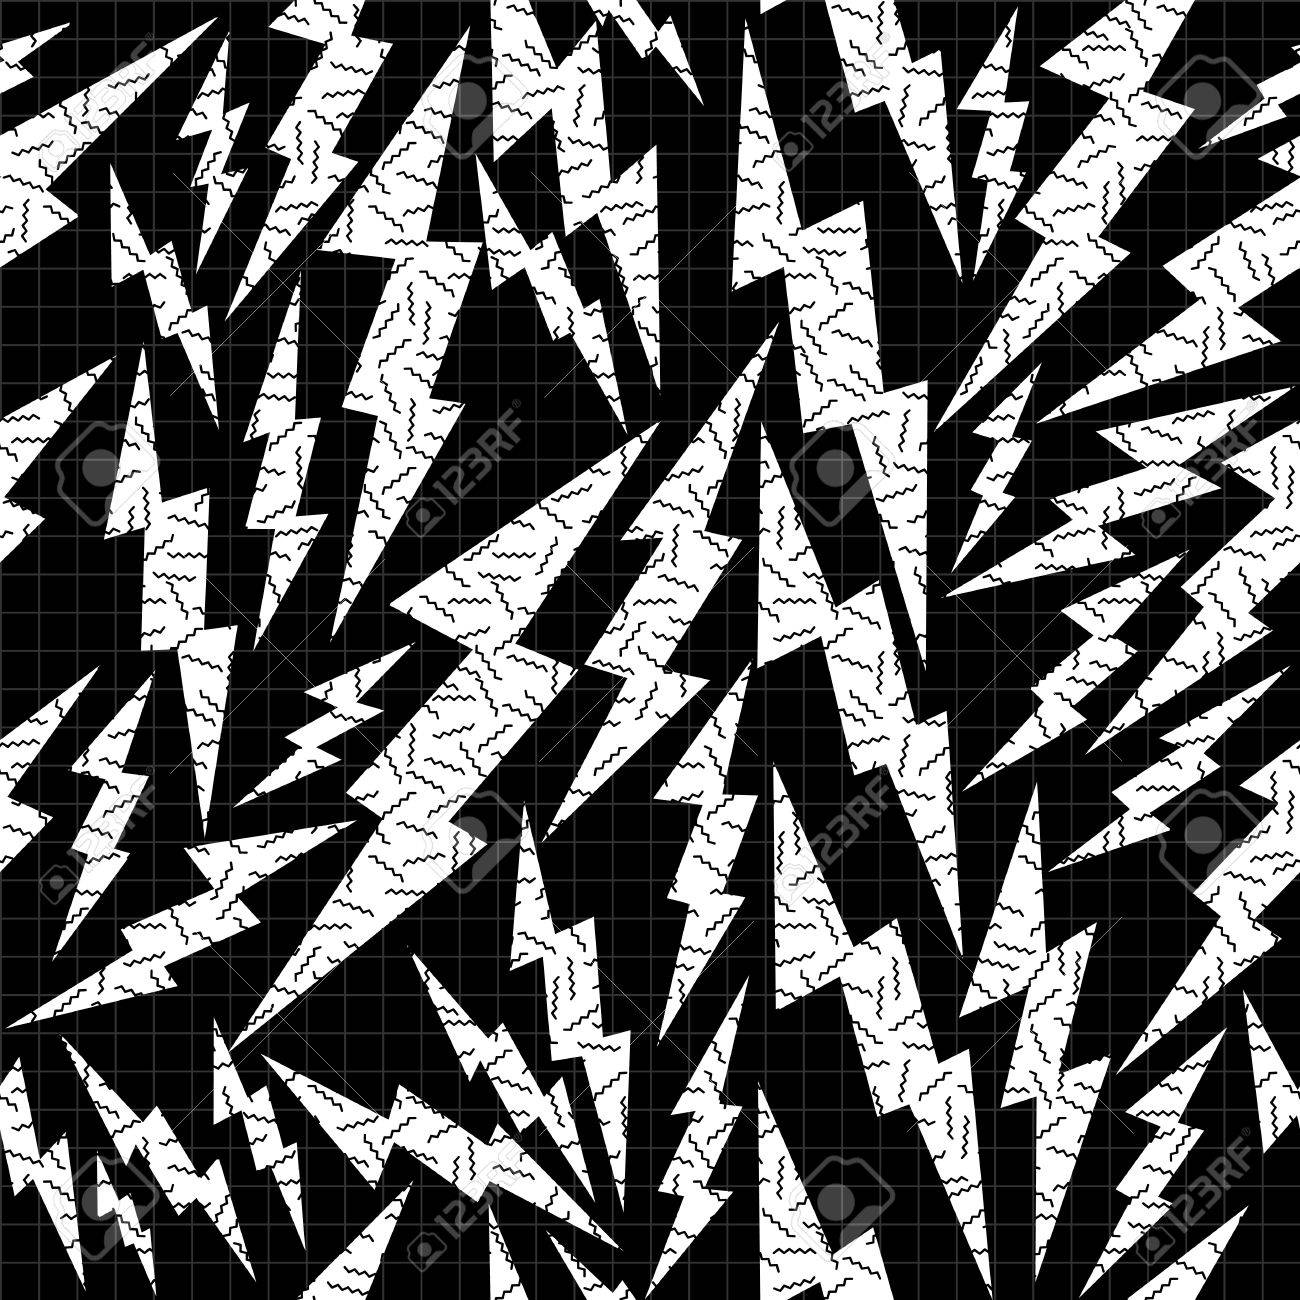 black and white retro seamless pattern with pop art thunder bolt